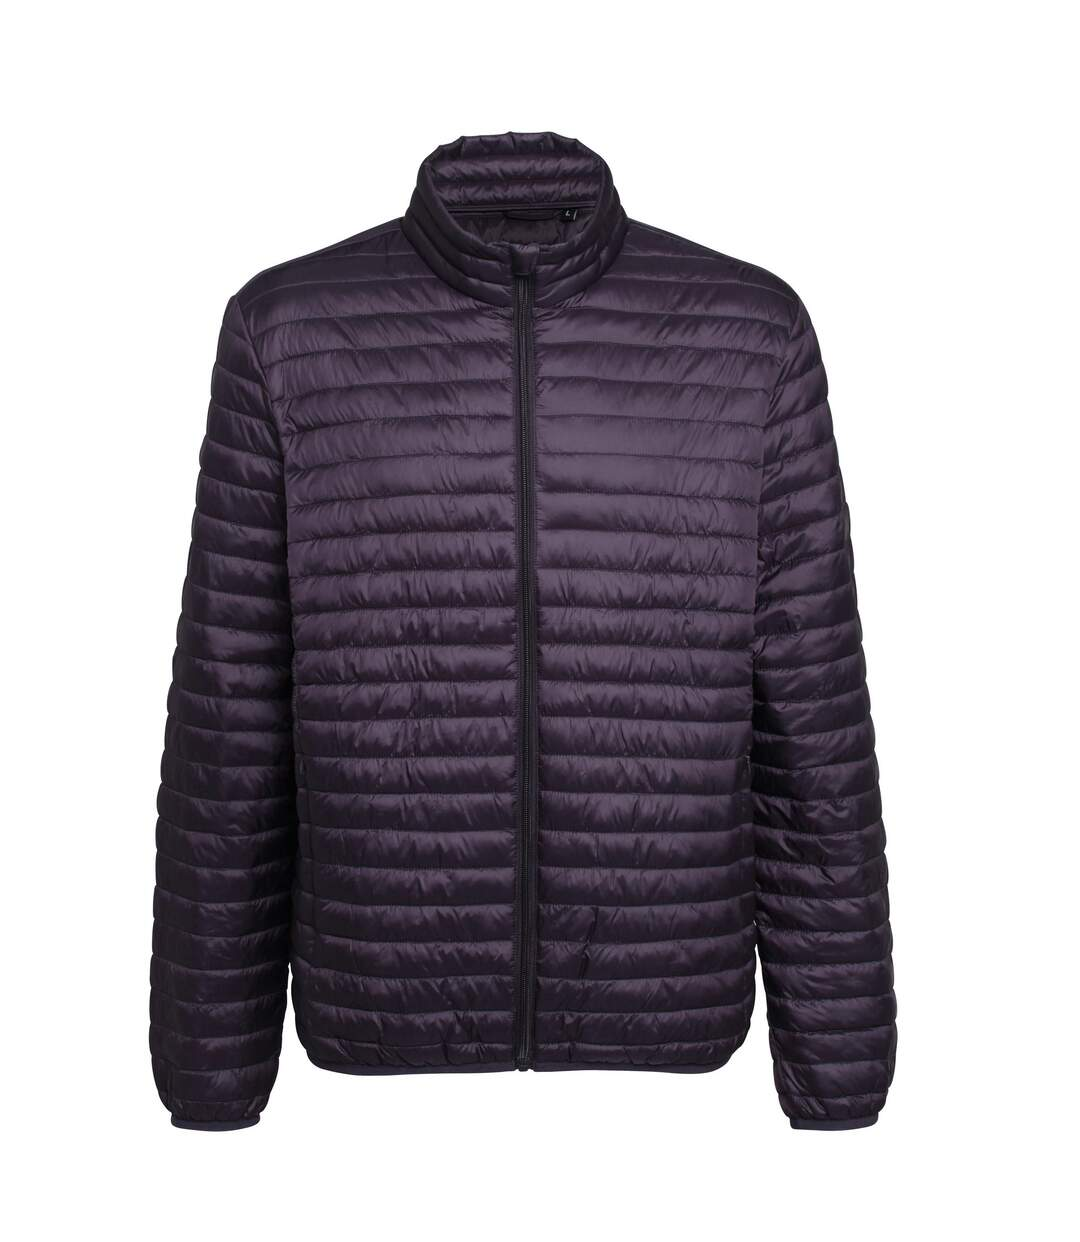 2786 Mens Tribe Fineline Padded Jacket (Aubergine) - UTRW3846